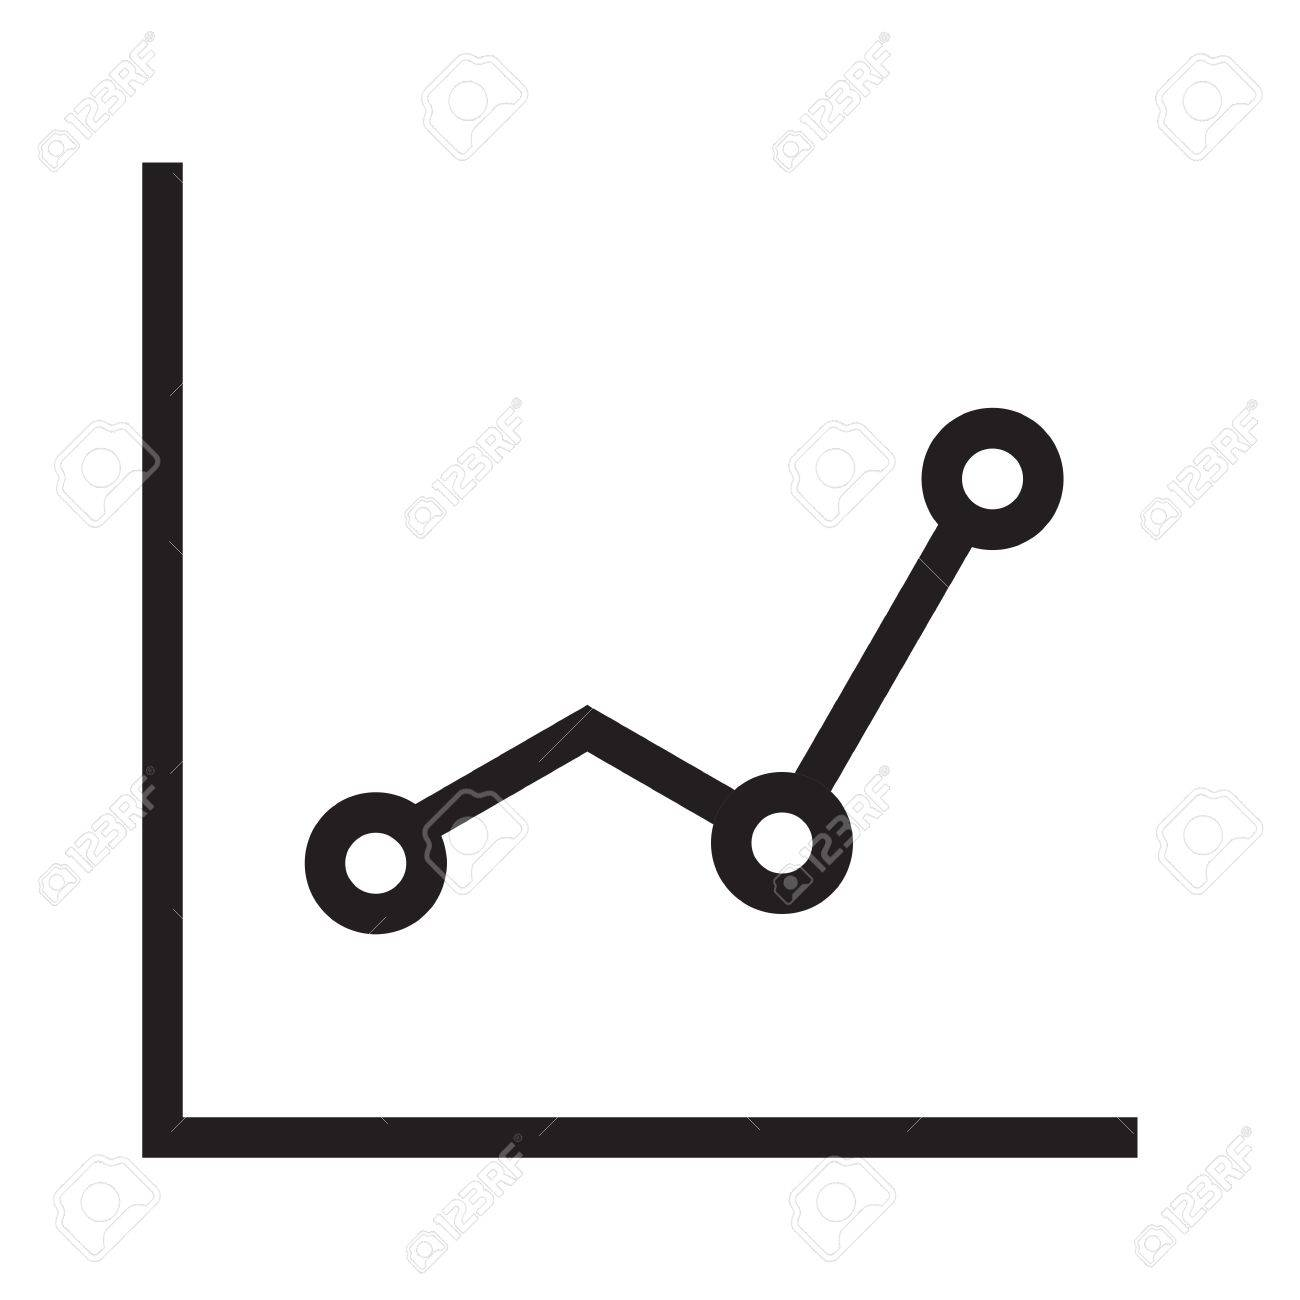 line, graph, chart, statistics icon vector image. can also be